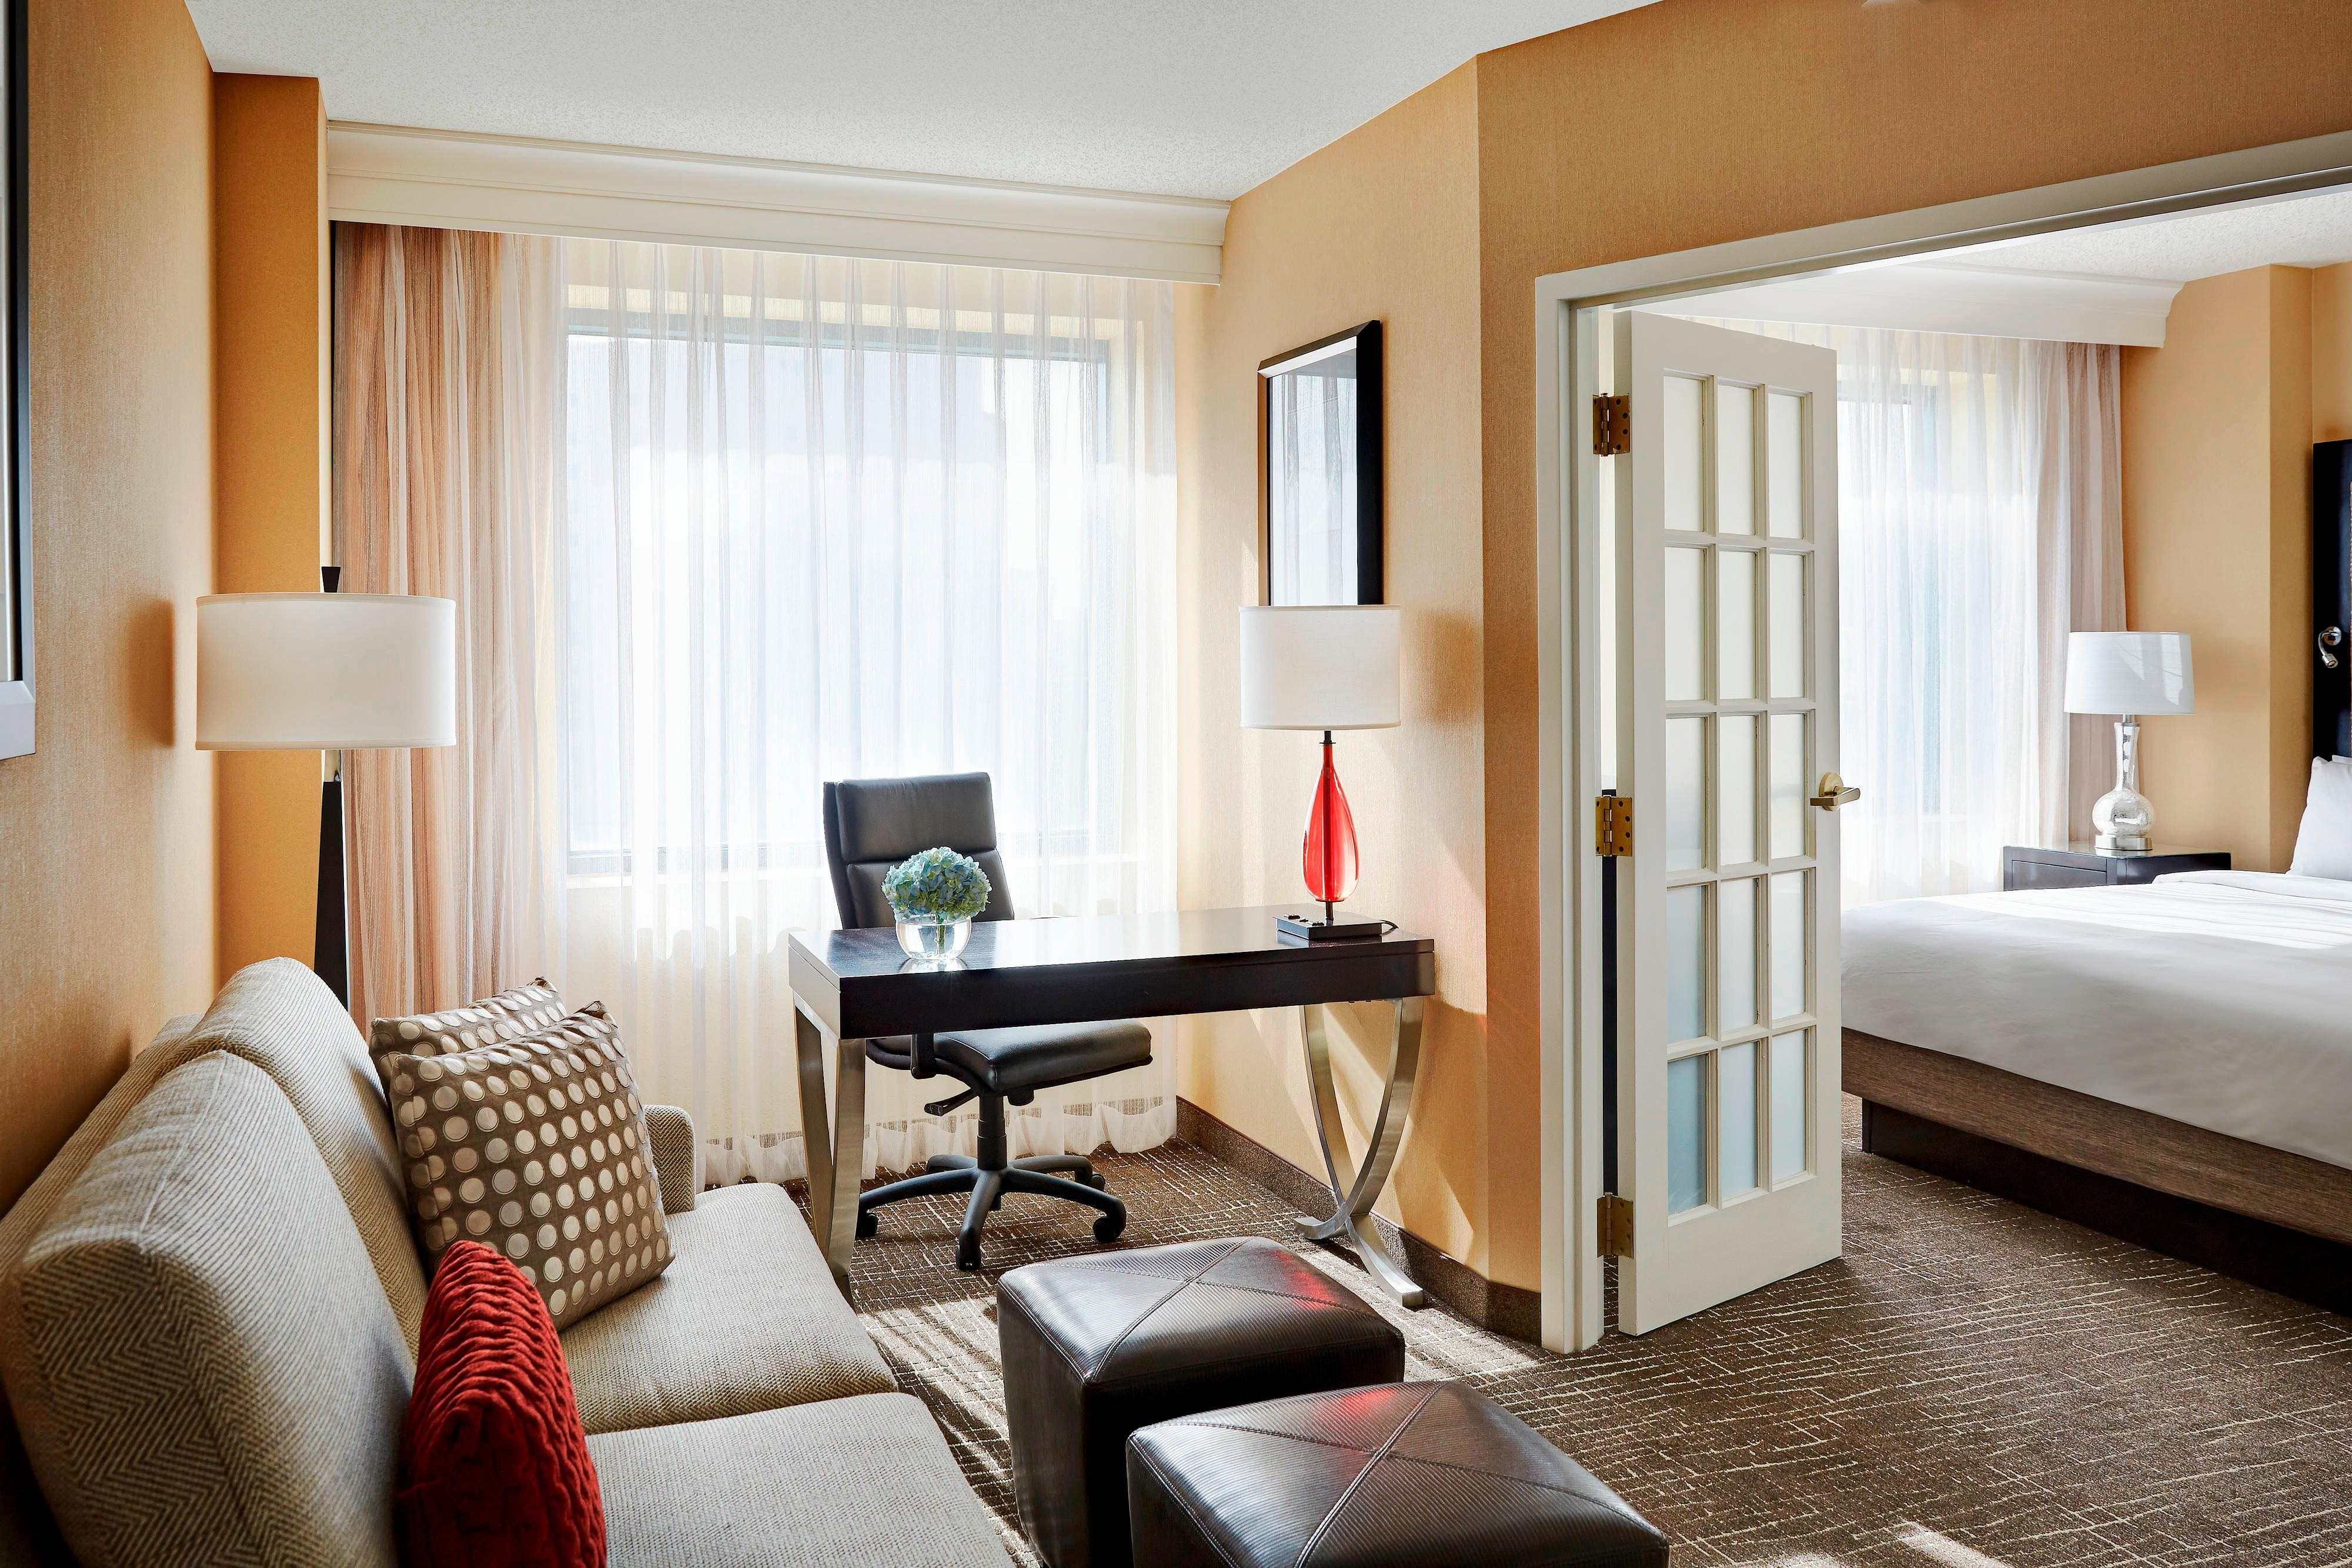 Hotel Rooms Near Hotel Rooms Near Las Vegas Convention Center | Las Vegas